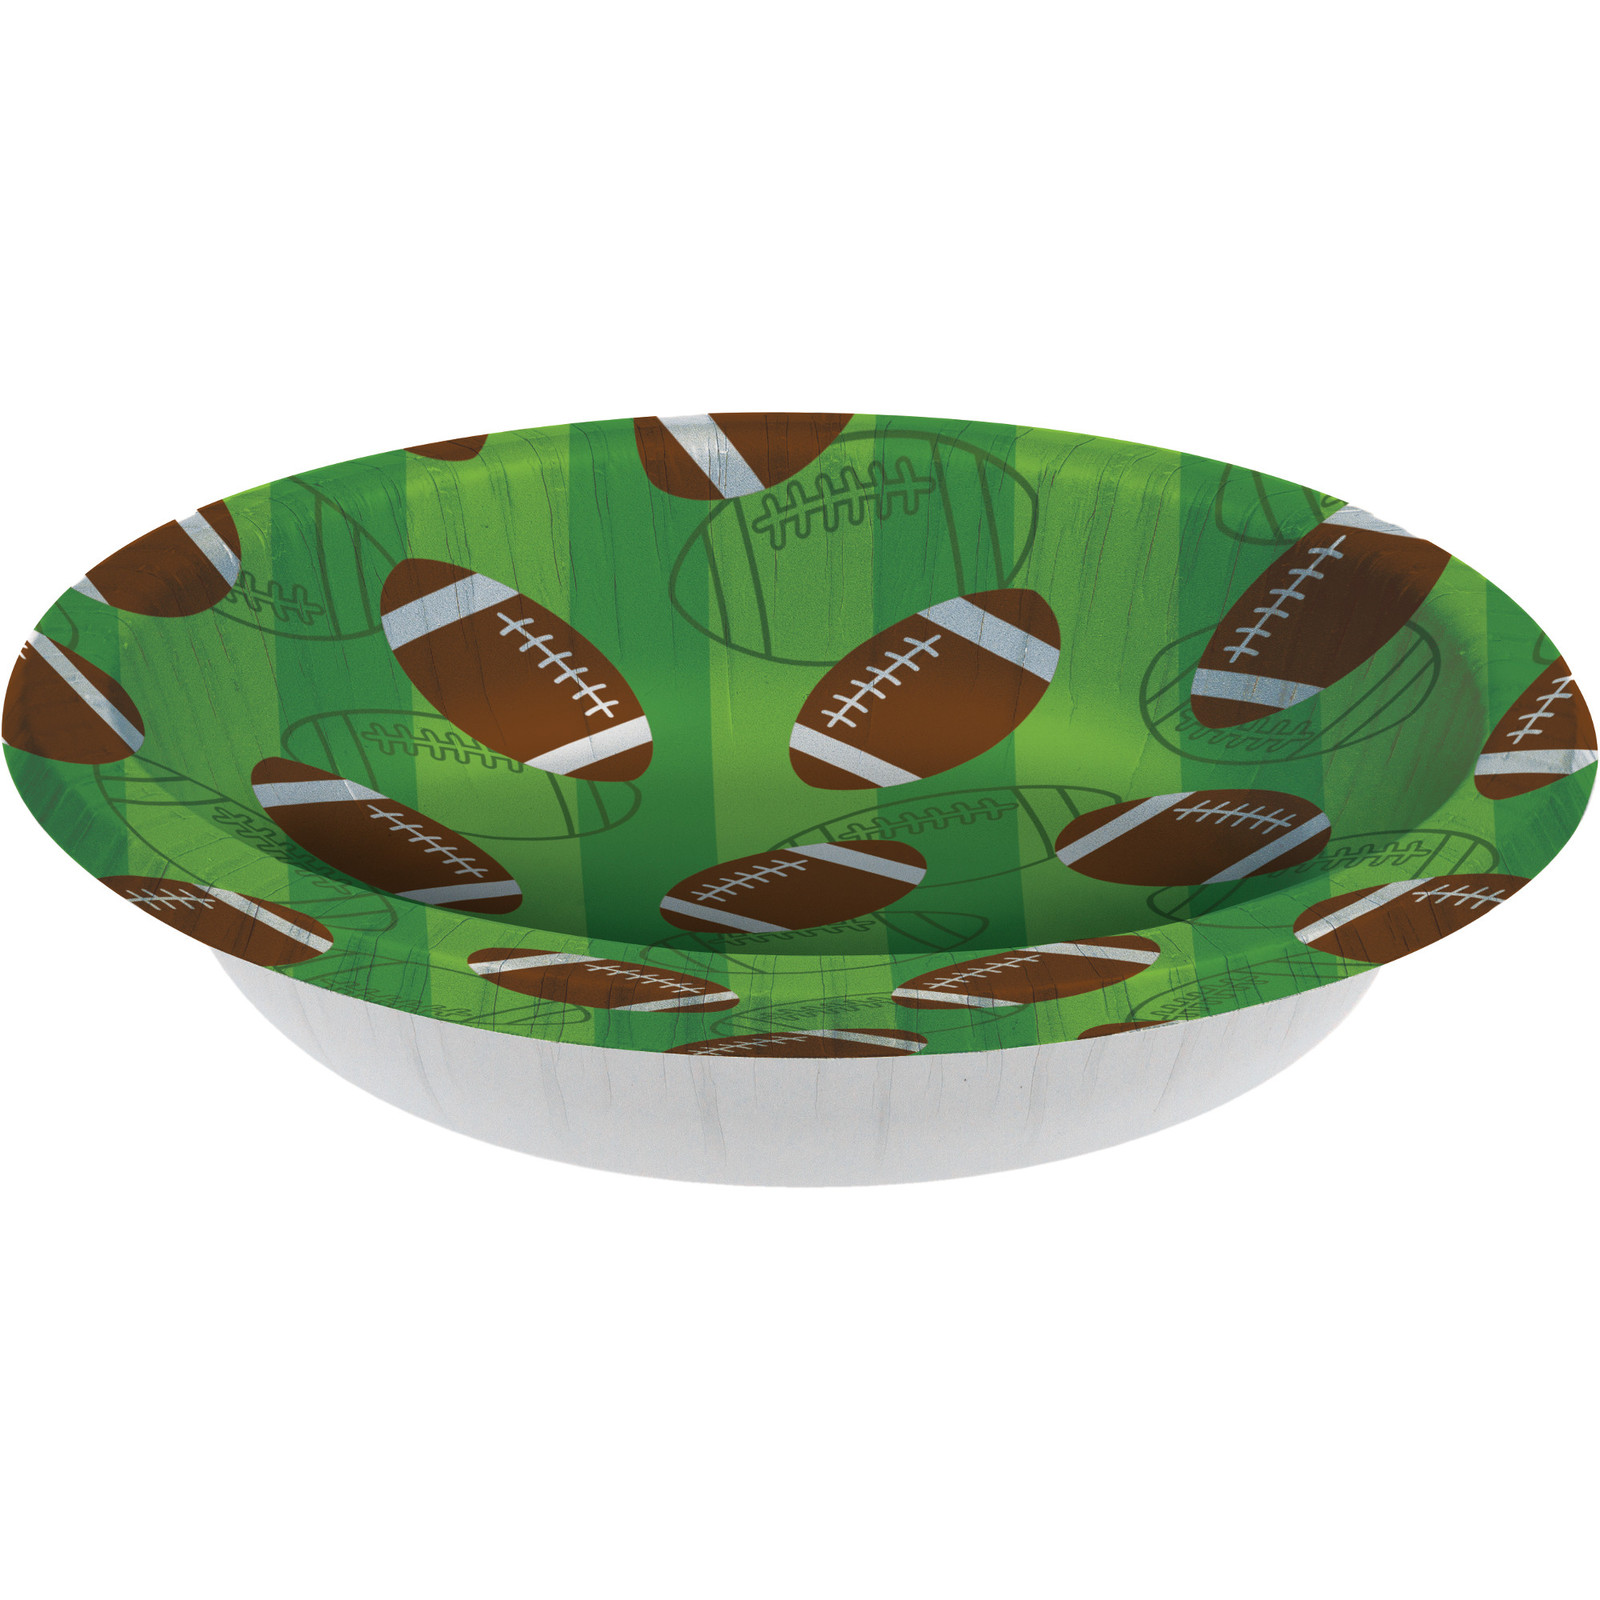 Football 20 Oz. Paper Bowl/Case of 96